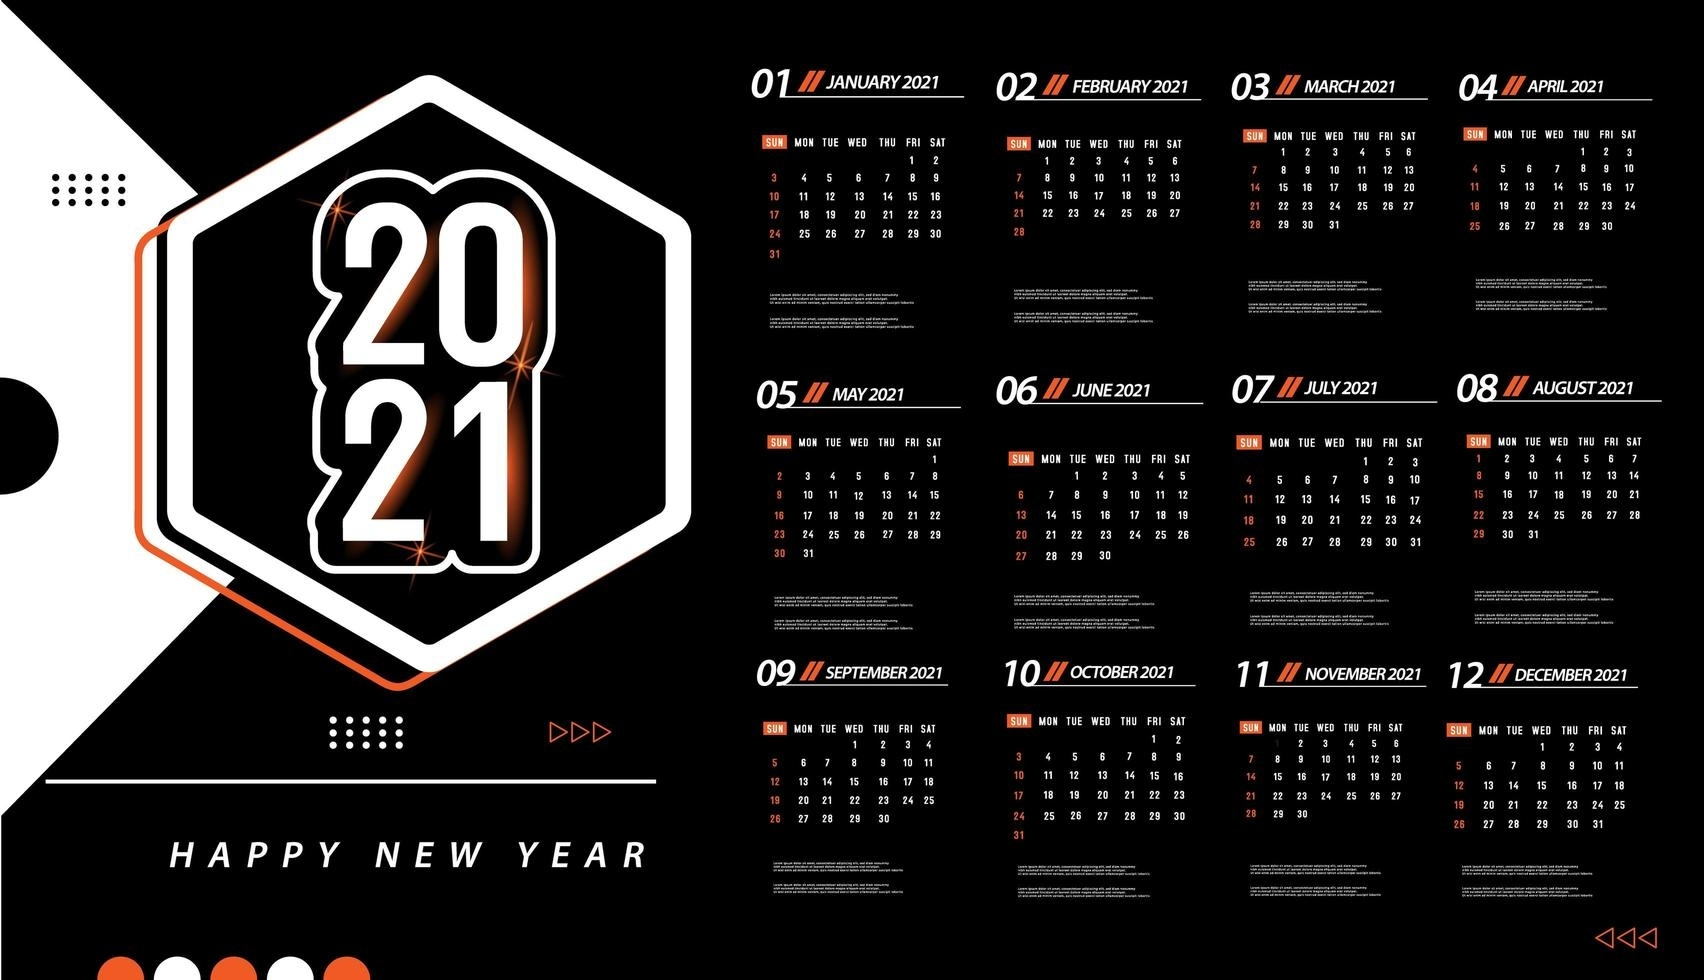 One Page 2021 Calendar Template - Download Free Vectors Free Calendar Background Templates